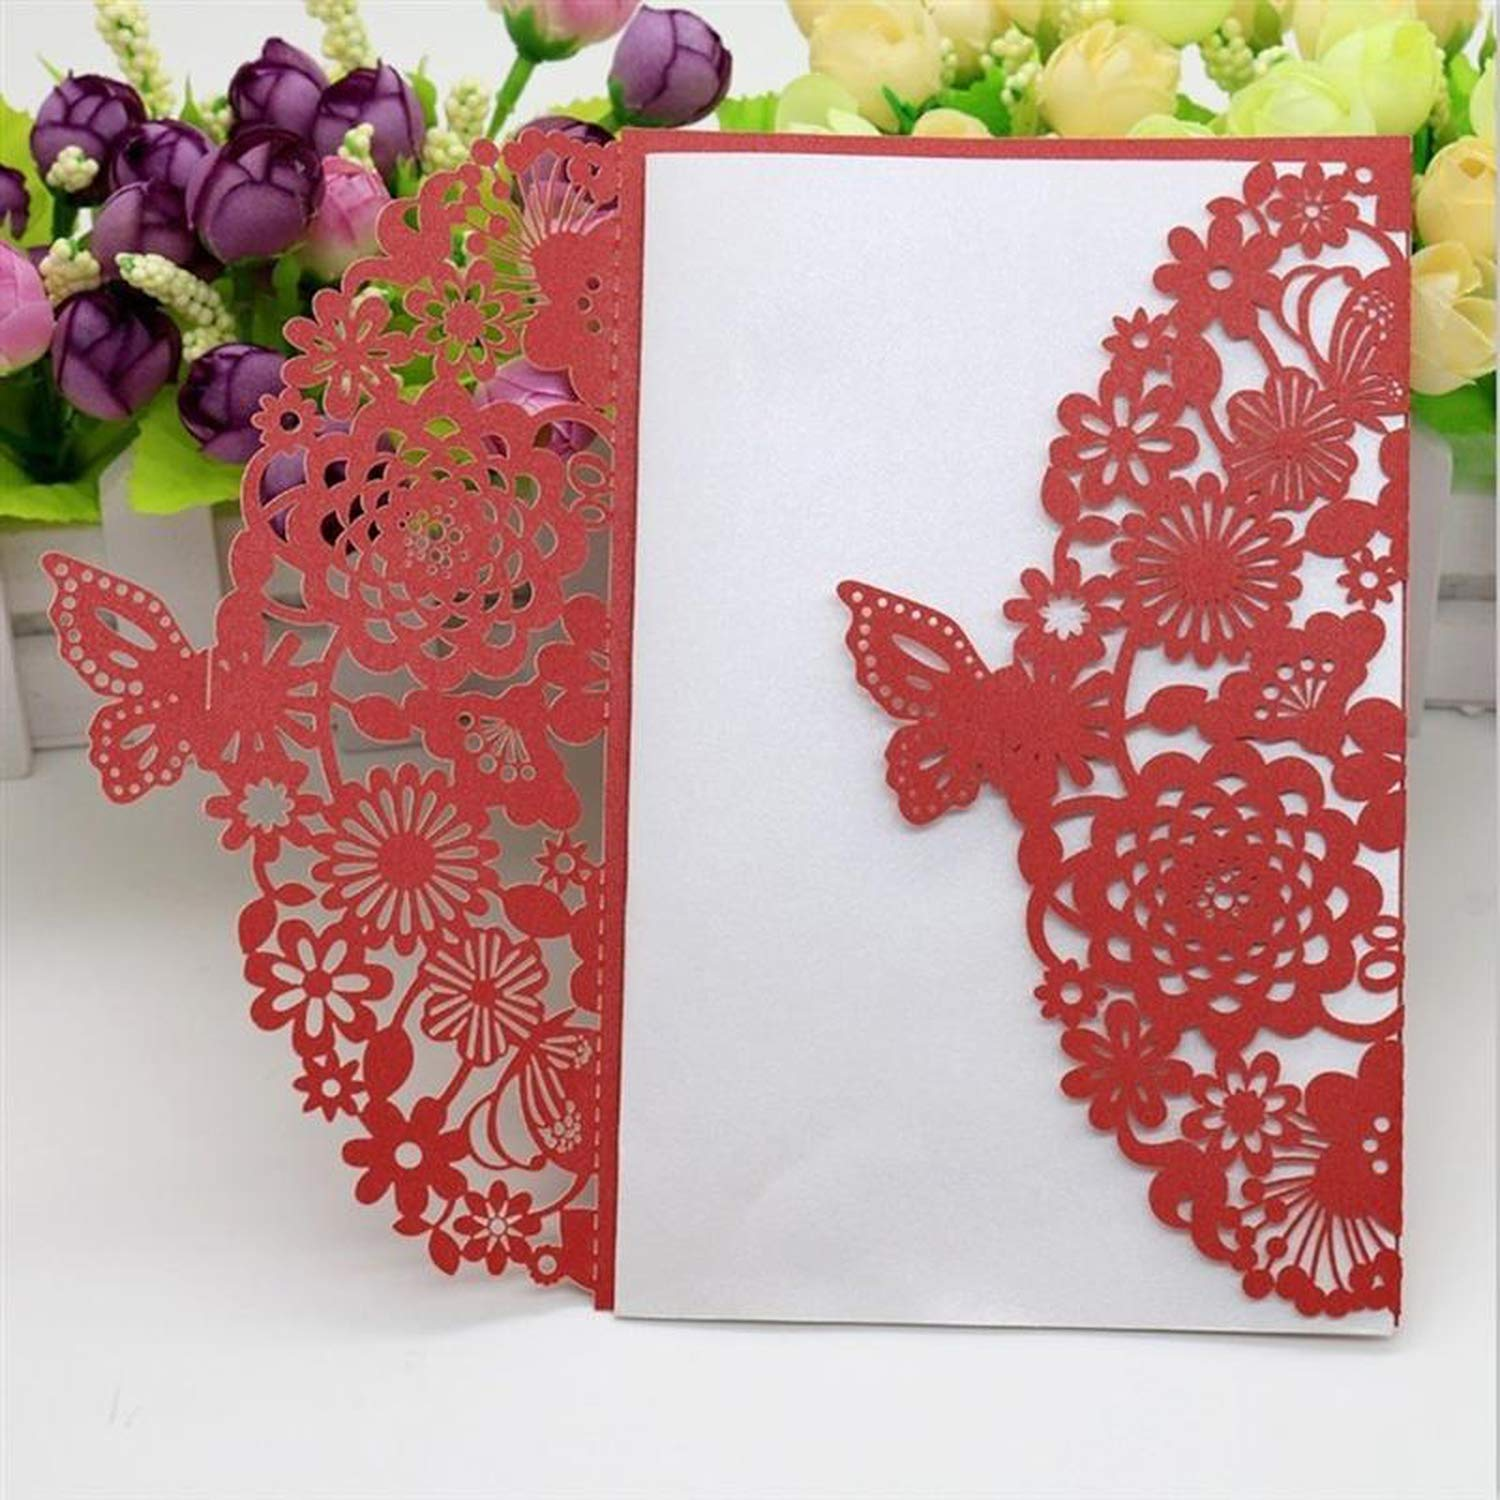 Amazon.com: 10Pcs Butterfly Hollow Wedding Invitation Cards for ...